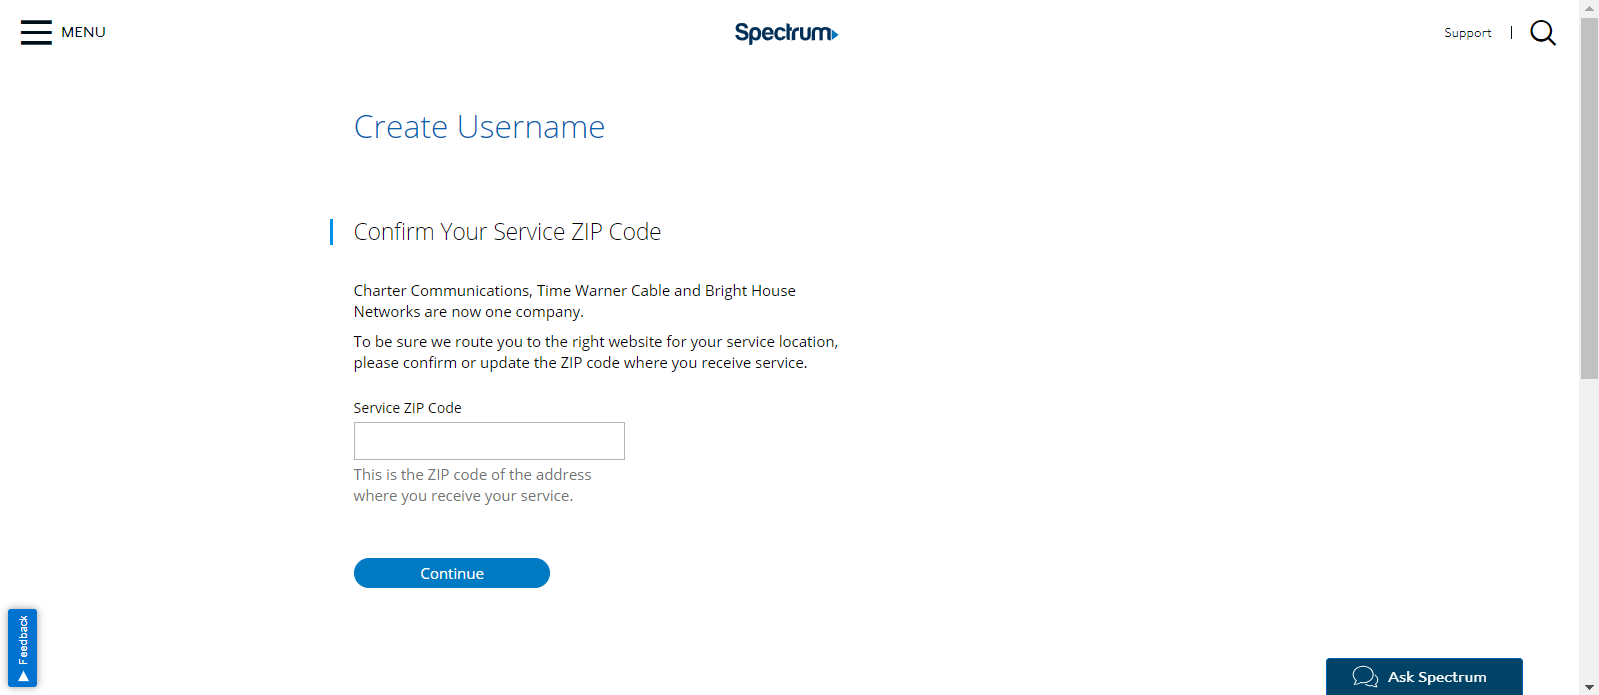 How to Register on Spectrum